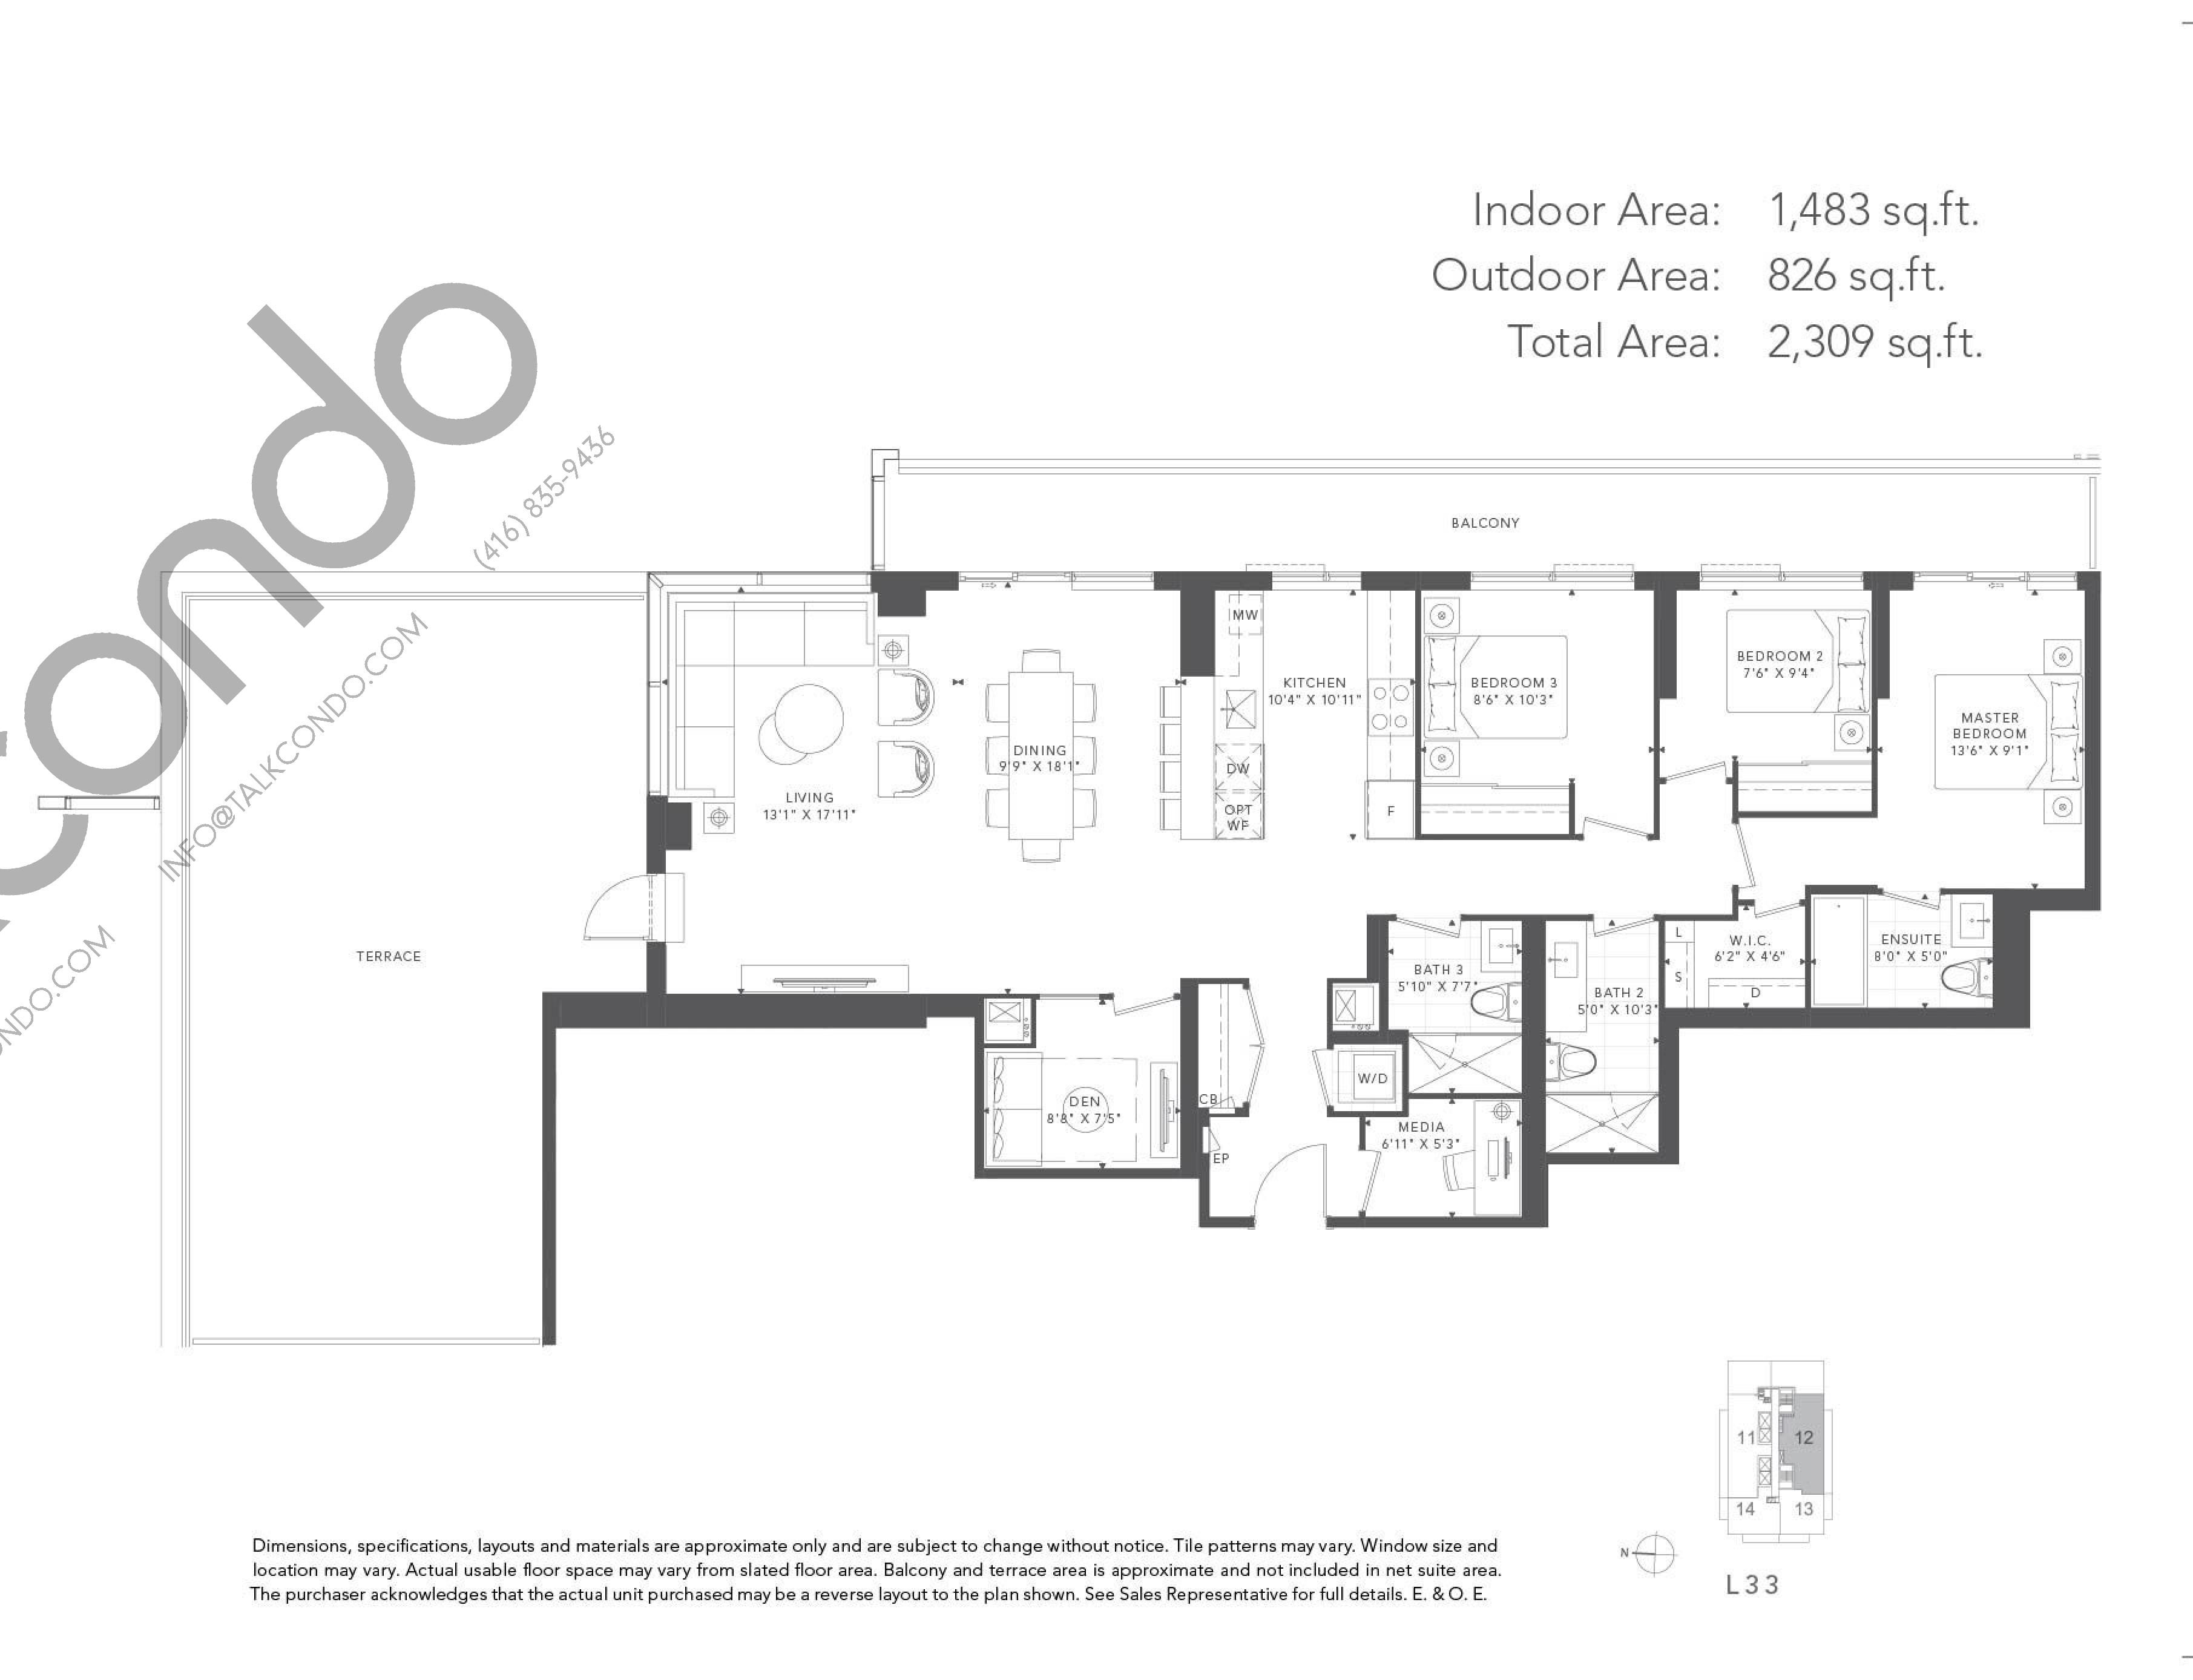 Rowan Floor Plan at T1 at M2M Condos - 1483 sq.ft